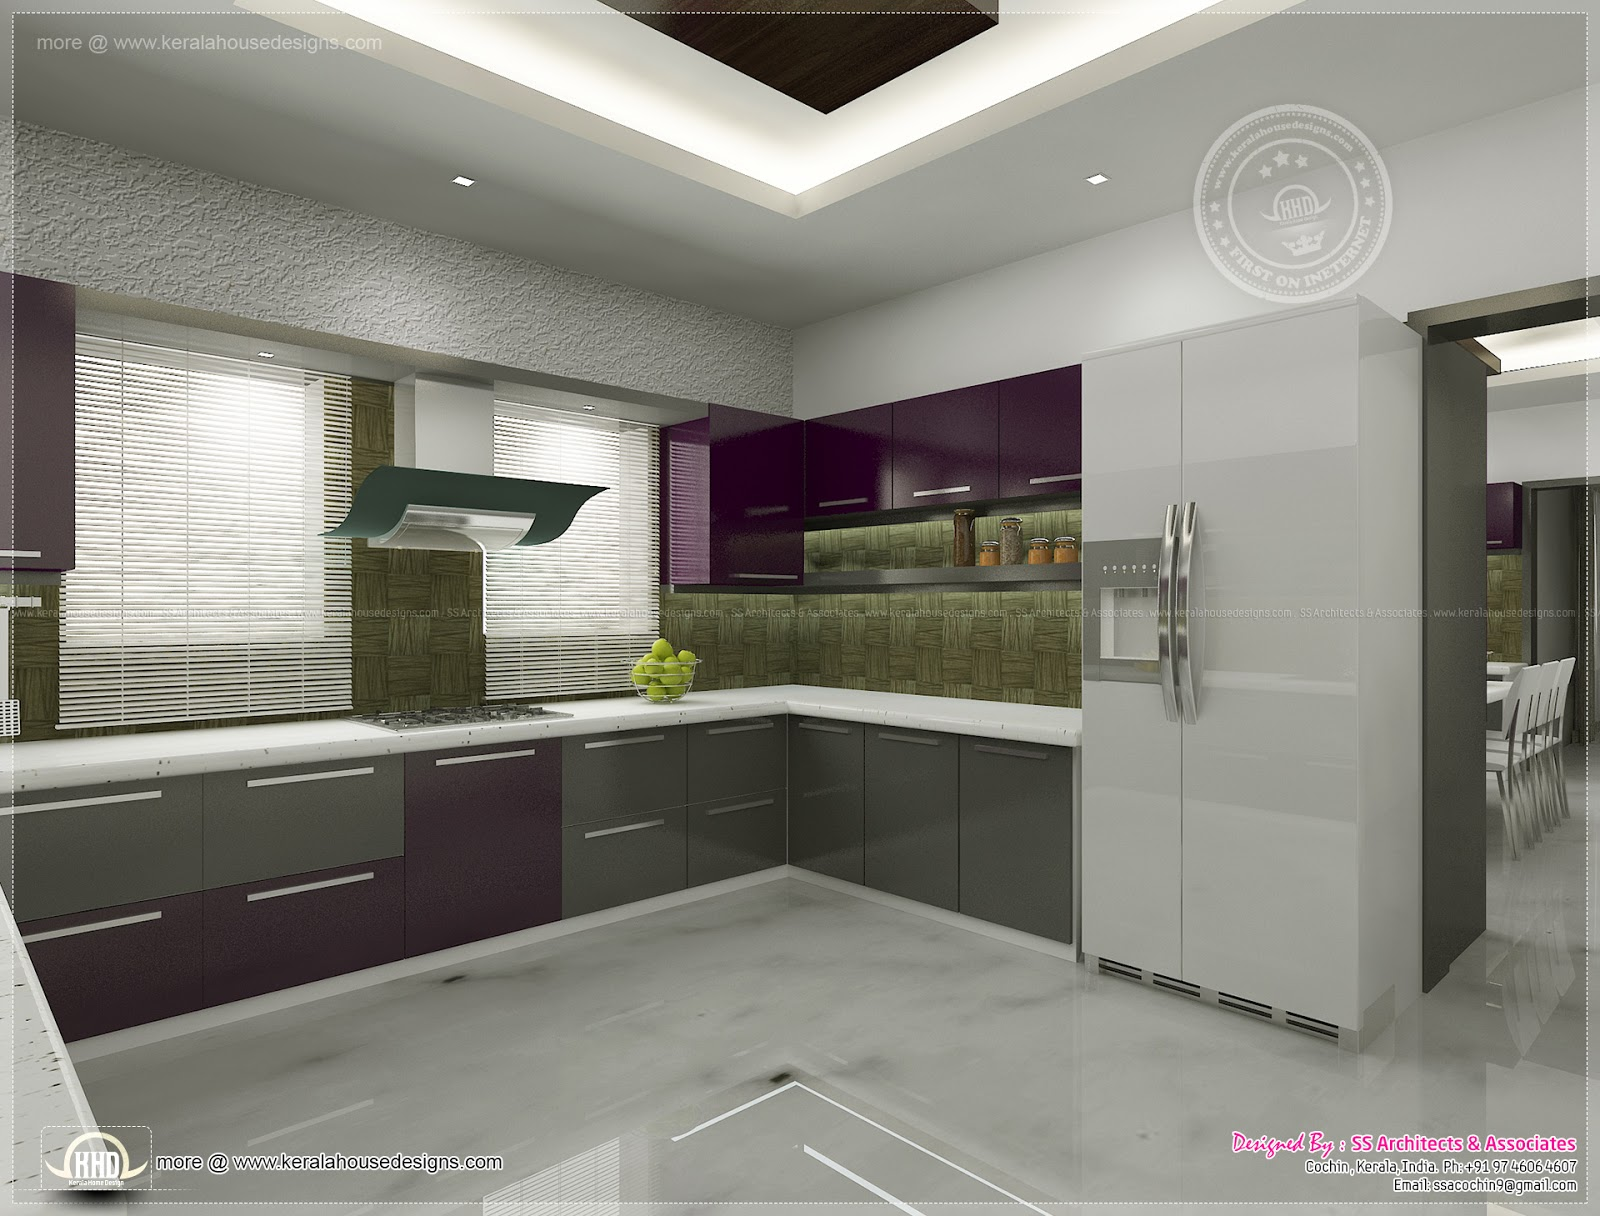 Kitchen interior views by ss architects cochin kerala for Home interior design india